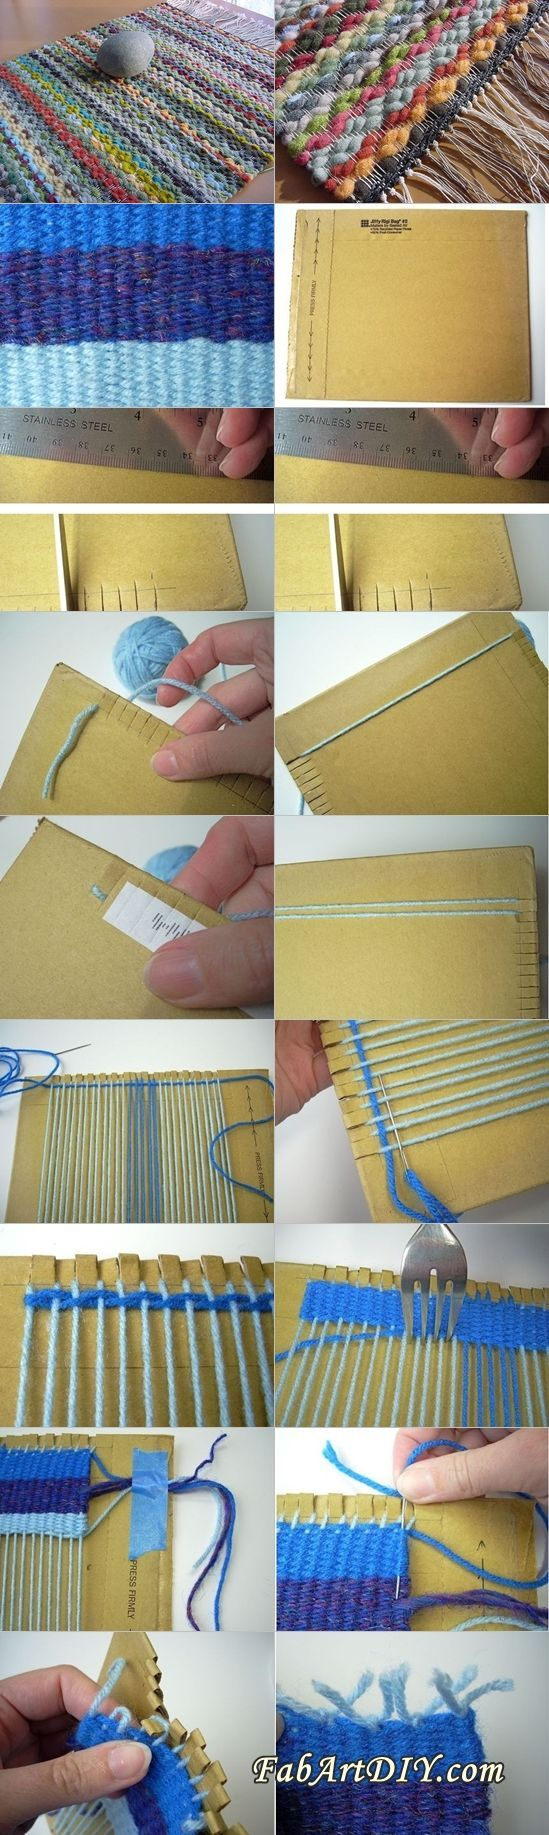 This is a very useful way to weave rugs at lowest cost, you can use yarn, cord, rope, or fabric scraps to make rug, but thin yarn or thread ...make a super large loom from cardboard: